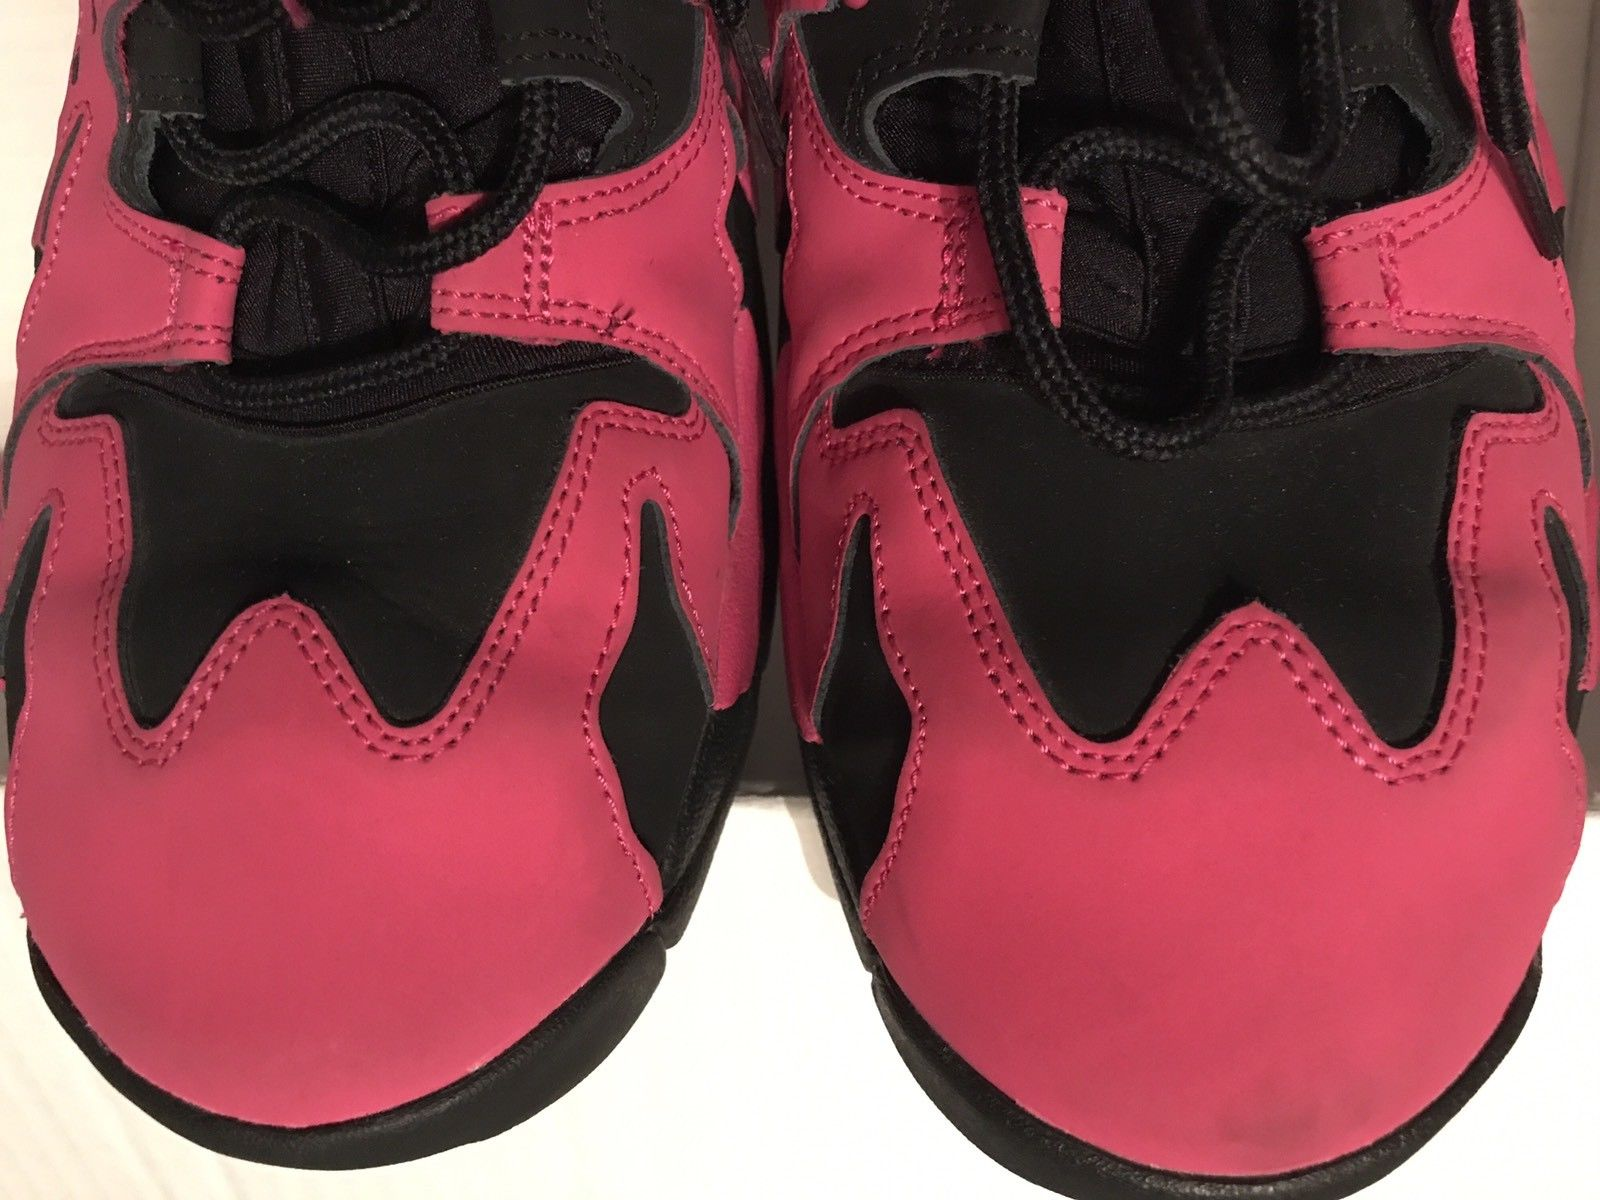 Image of Nike Air DT Max 96 Mens Pink Black Size 13 Sneakers Deion Sanders - Used